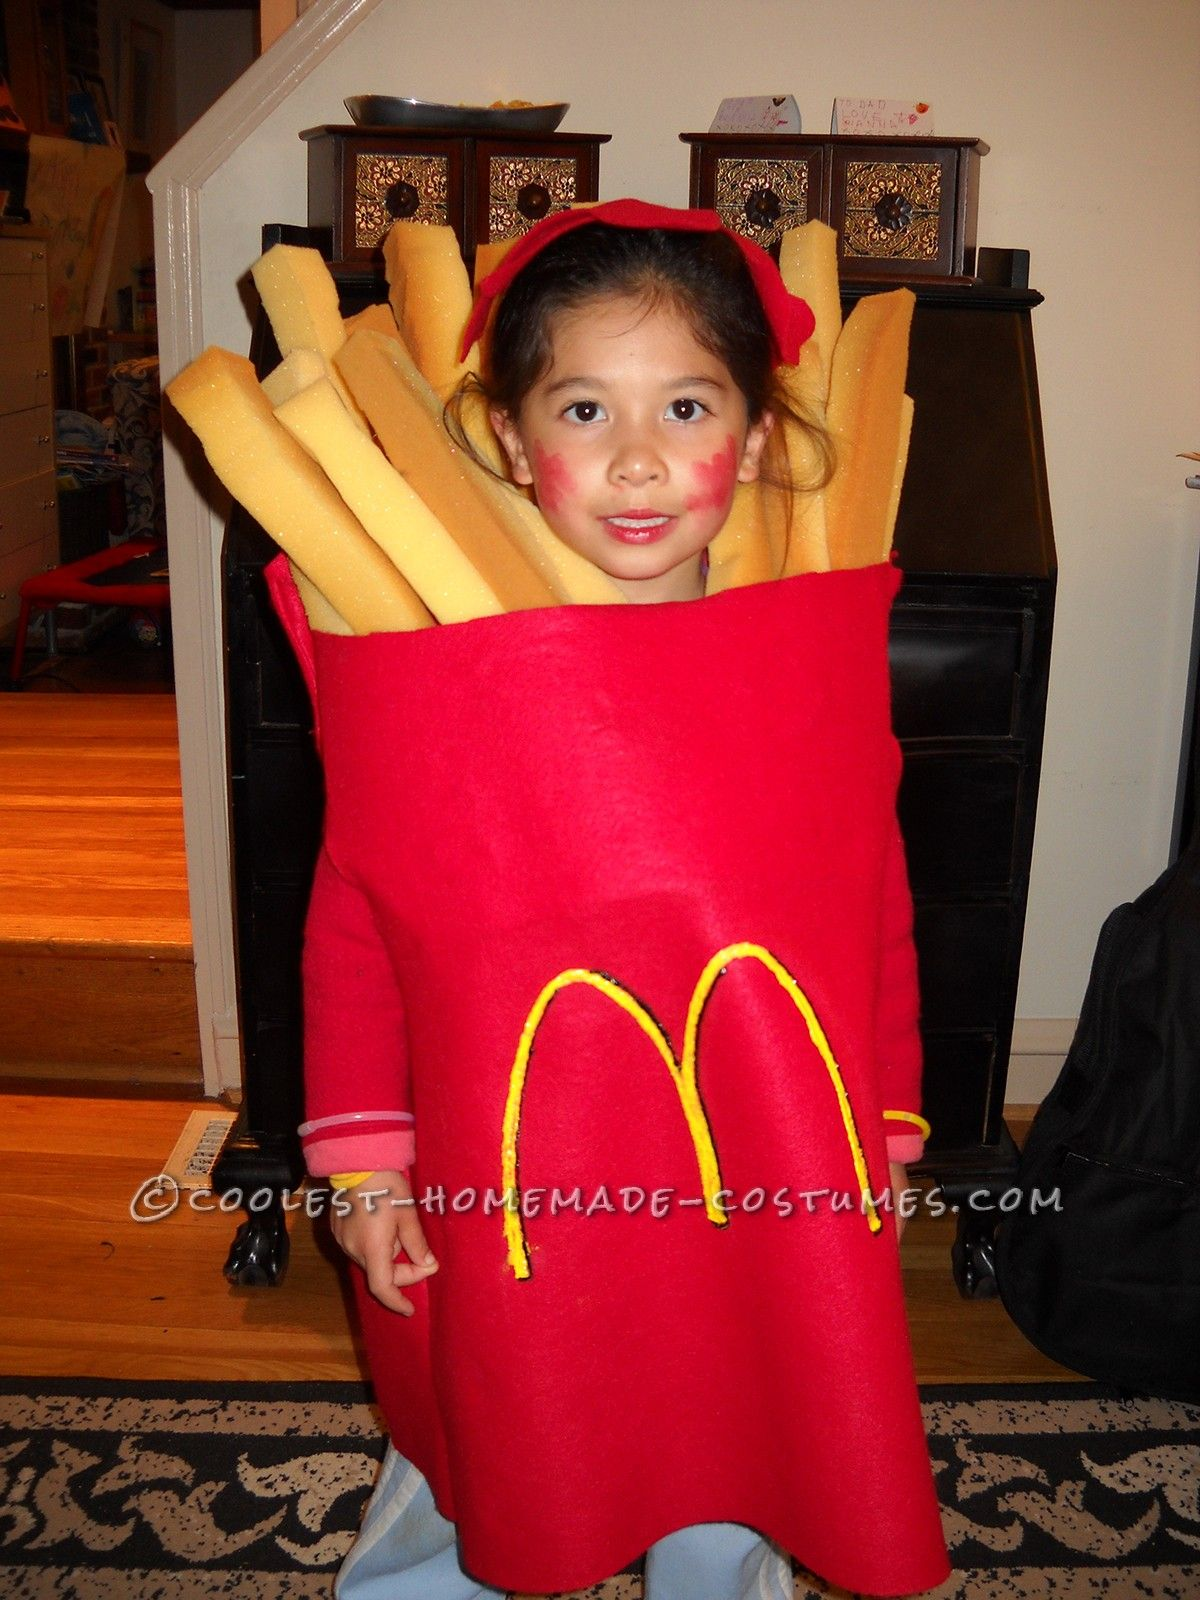 Cool Halloween Costume for a Child: Large Order of McDonald's ...